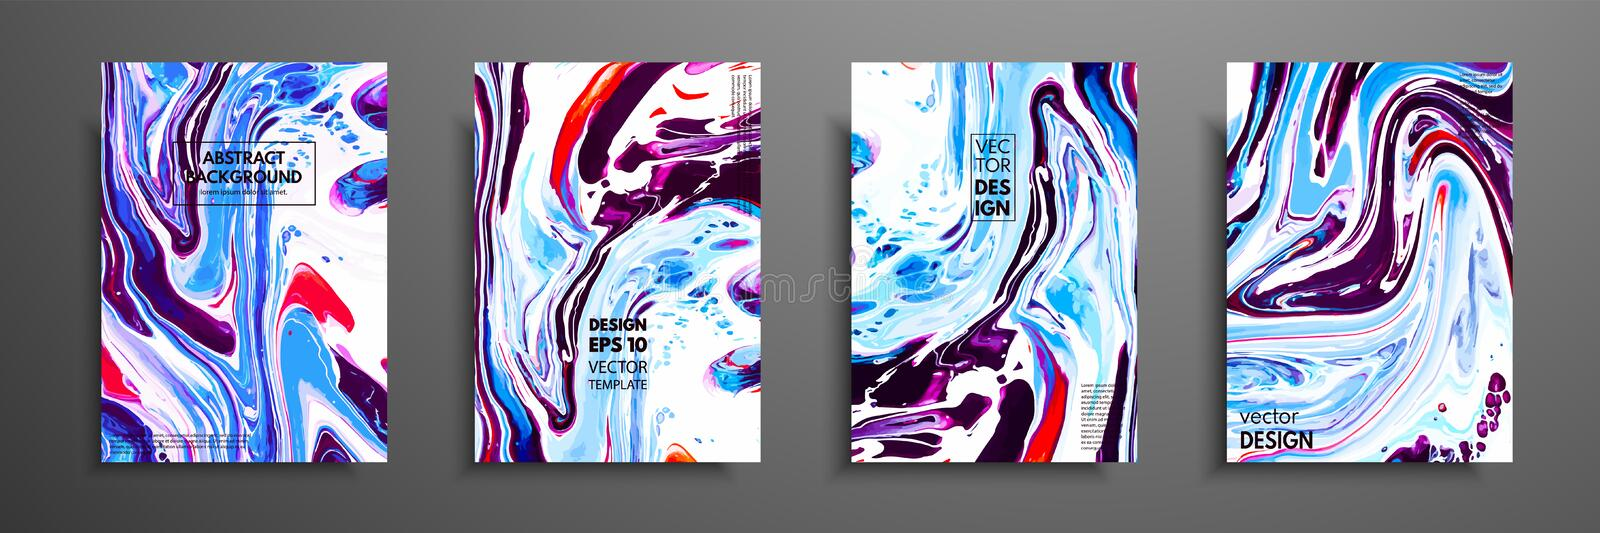 Covers with acrylic liquid textures. Colorful abstract composition. Modern artwork. Vector illustrations with mixed blue vector illustration